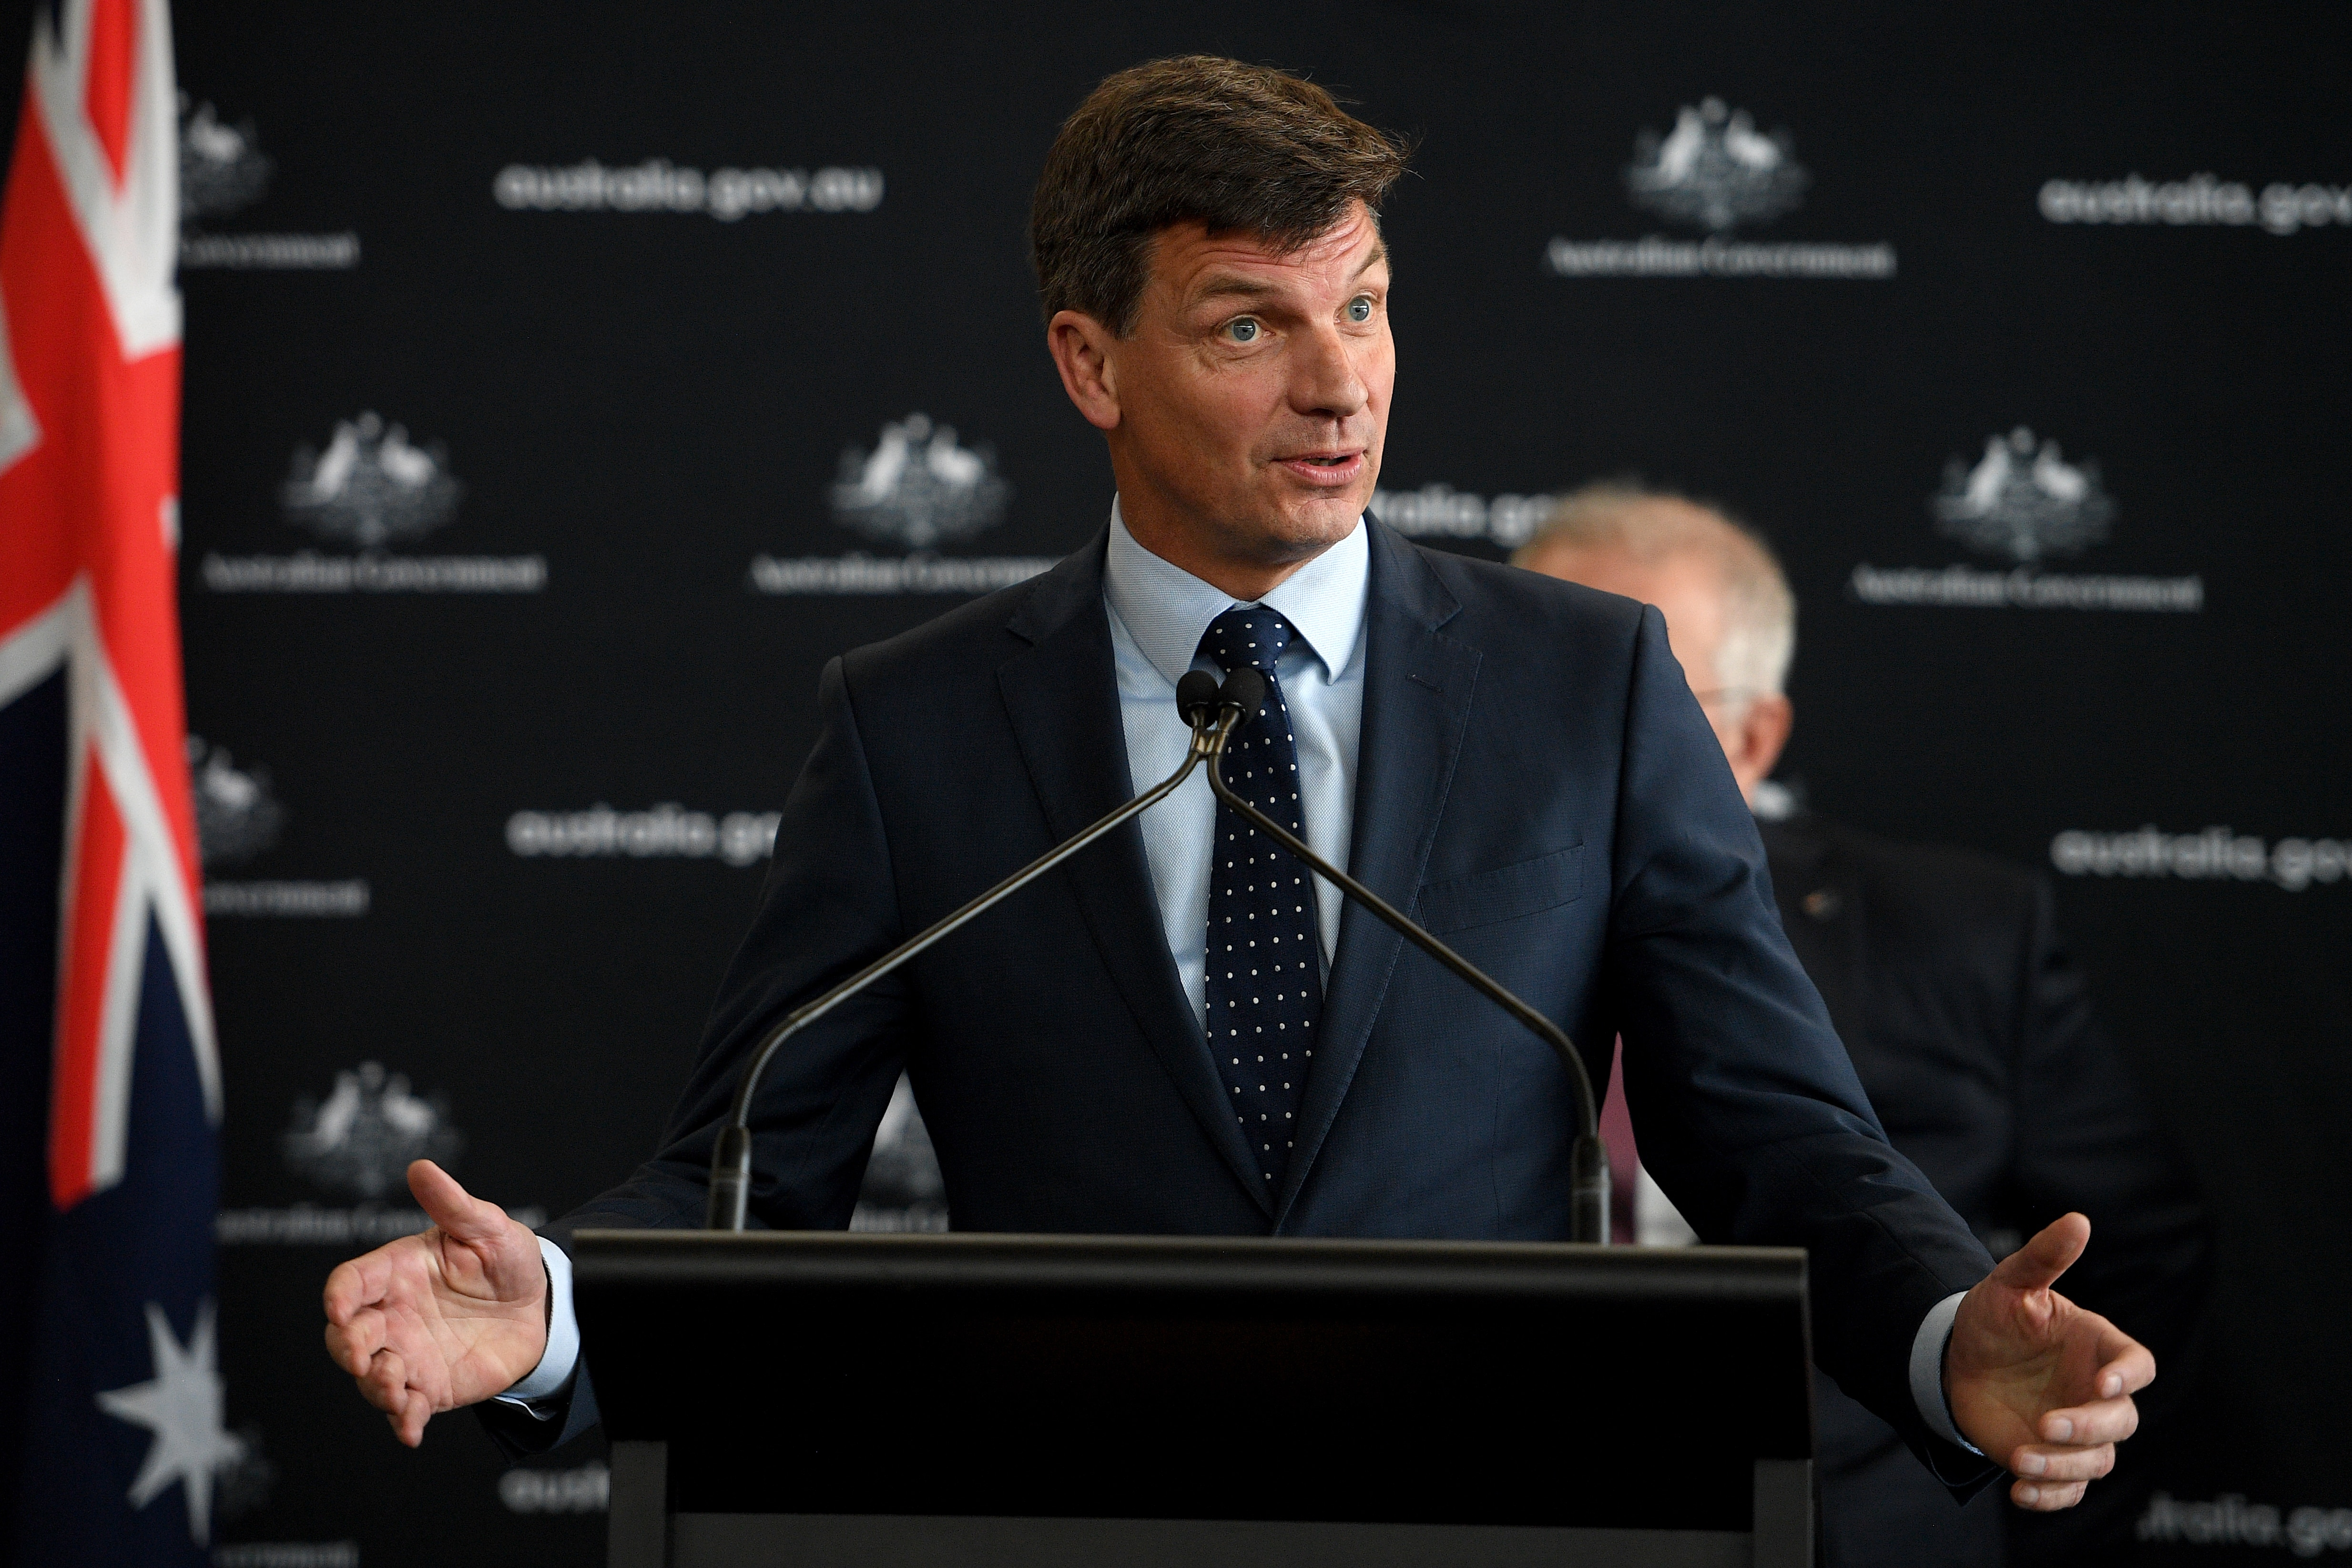 Energy Minister Angus Taylor is set to unveil the details around the government's technology roadmap.